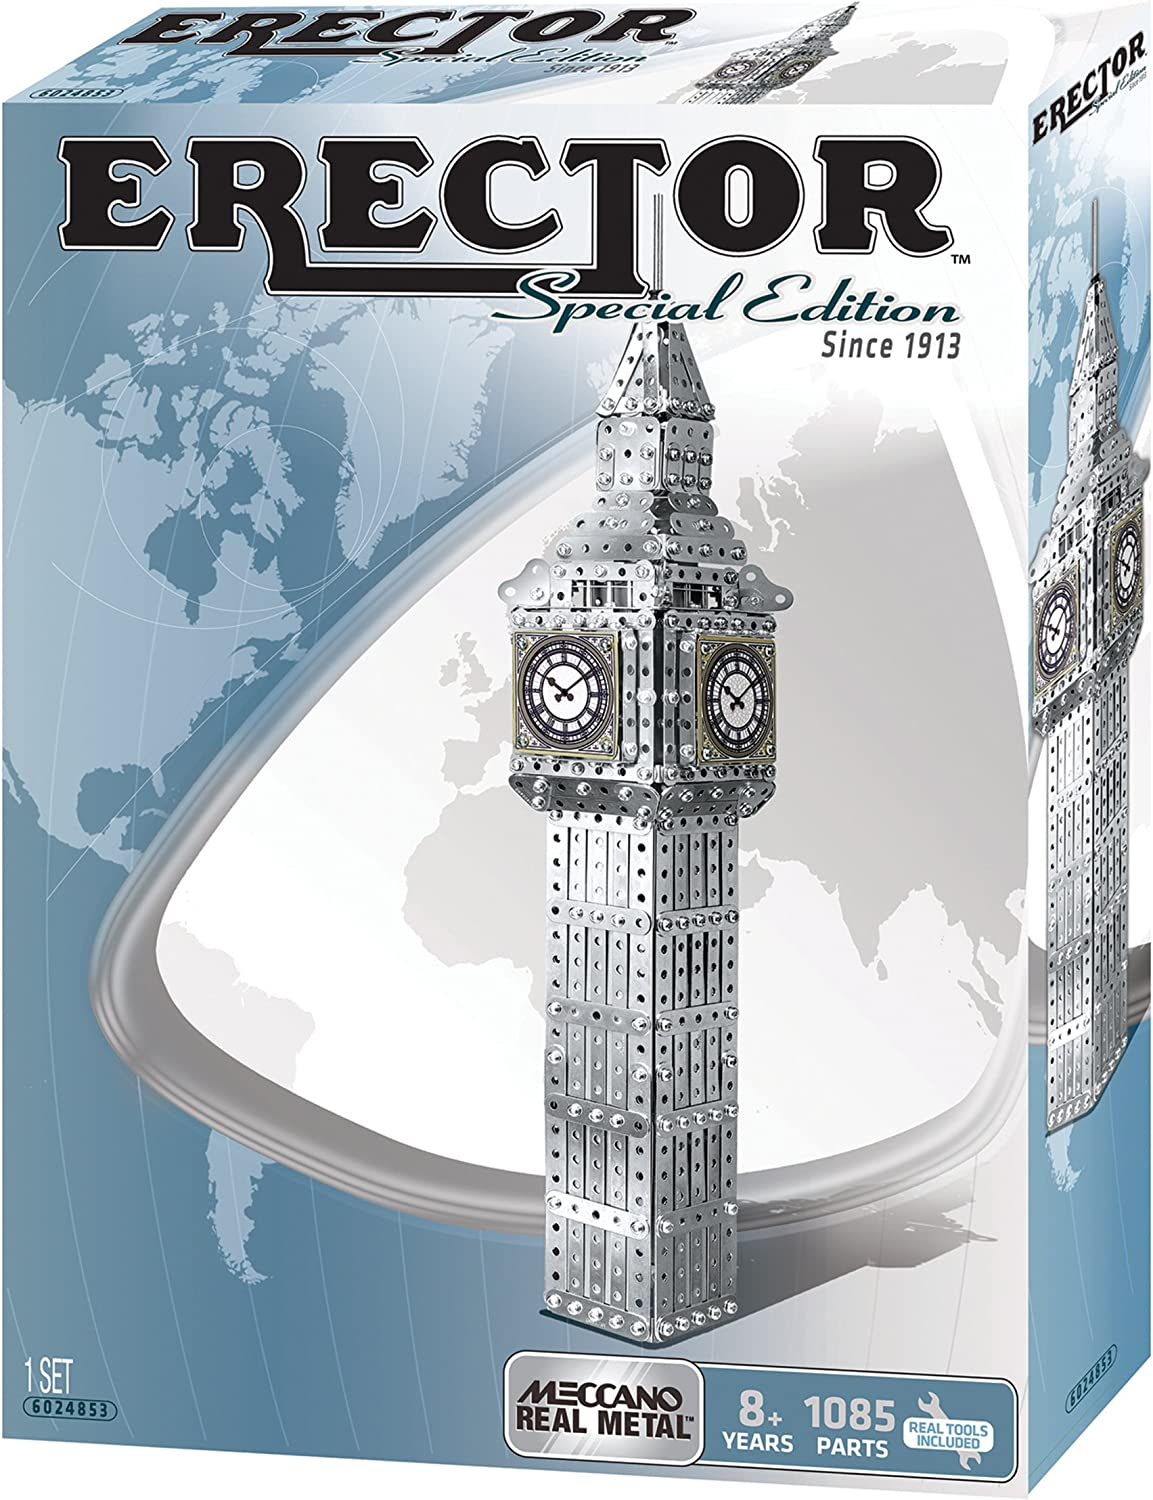 Erector Special Addition The Big Ben Clock of London